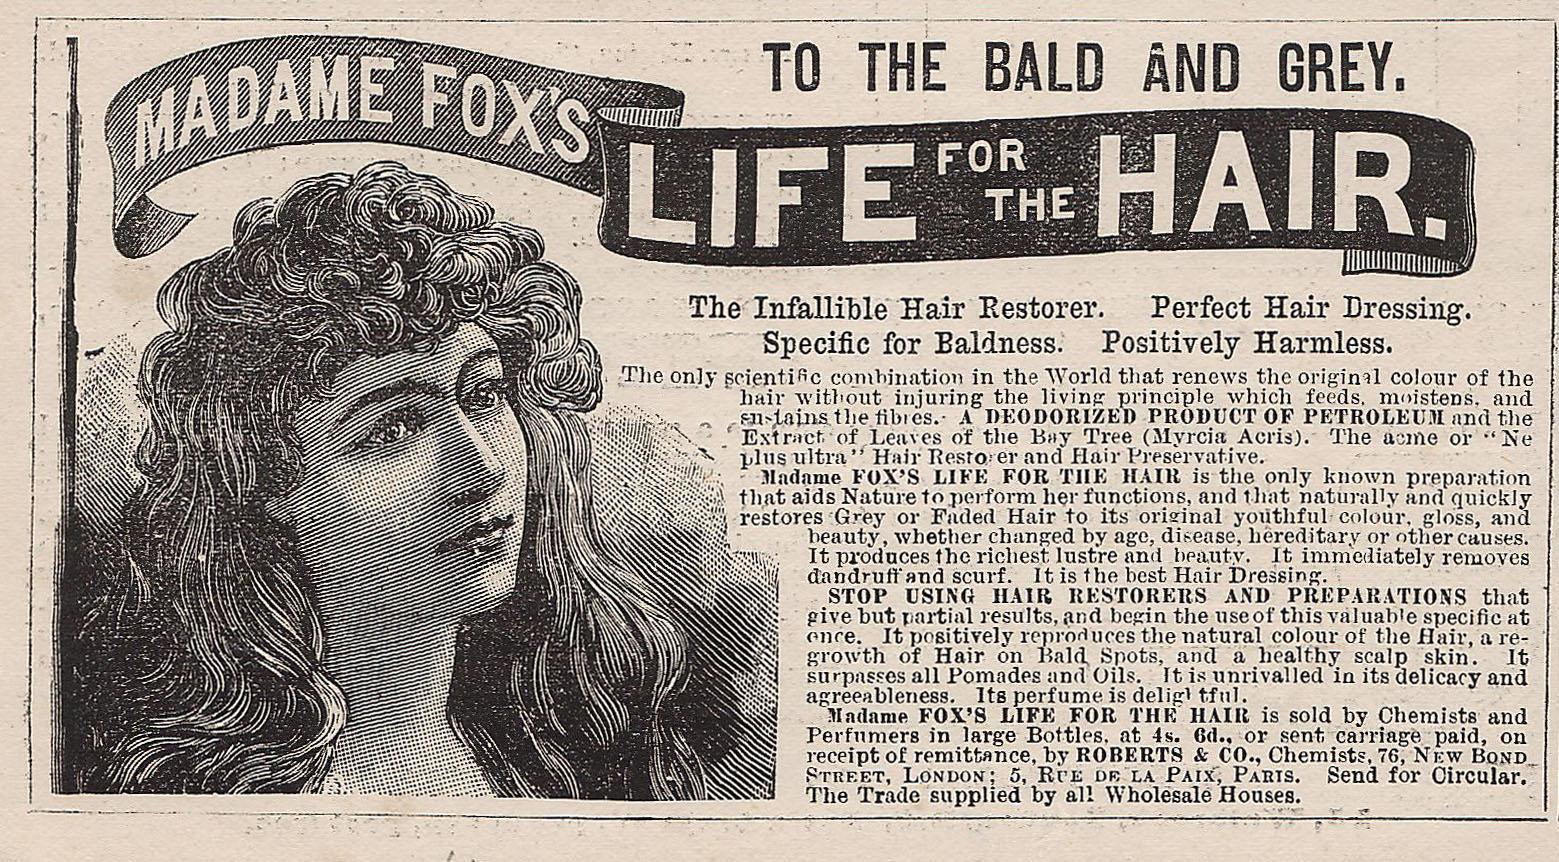 Madame Fox's Life for the Hair